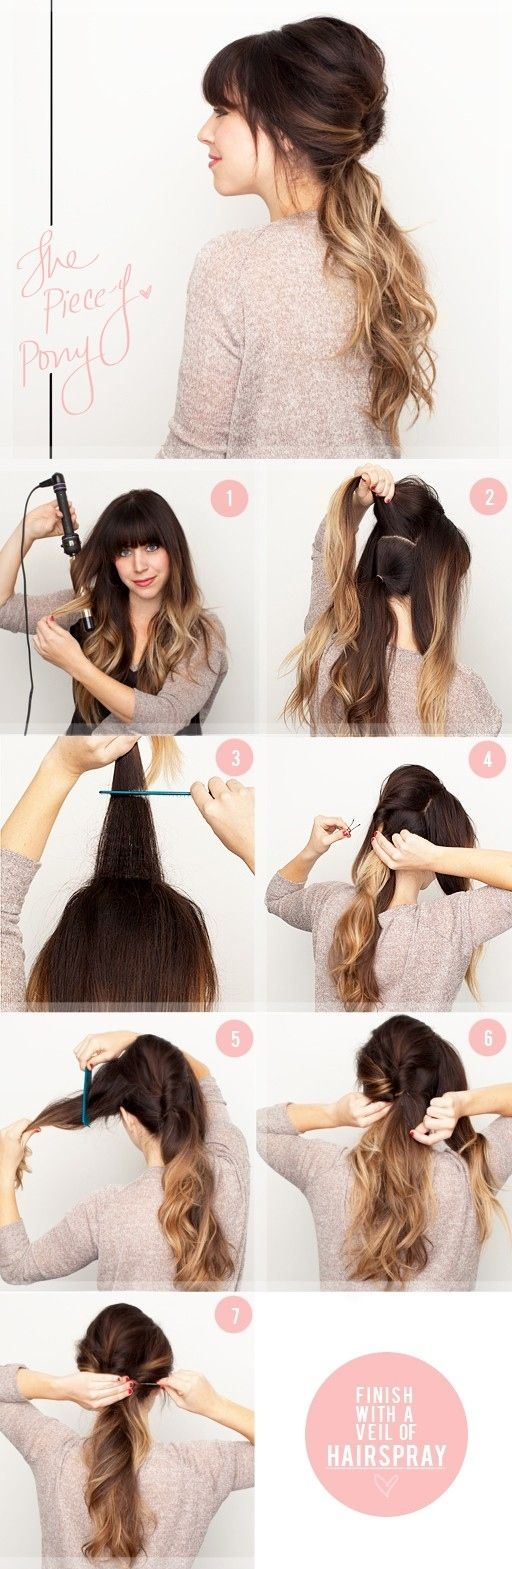 best hair styles images on pinterest cute hairstyles hair